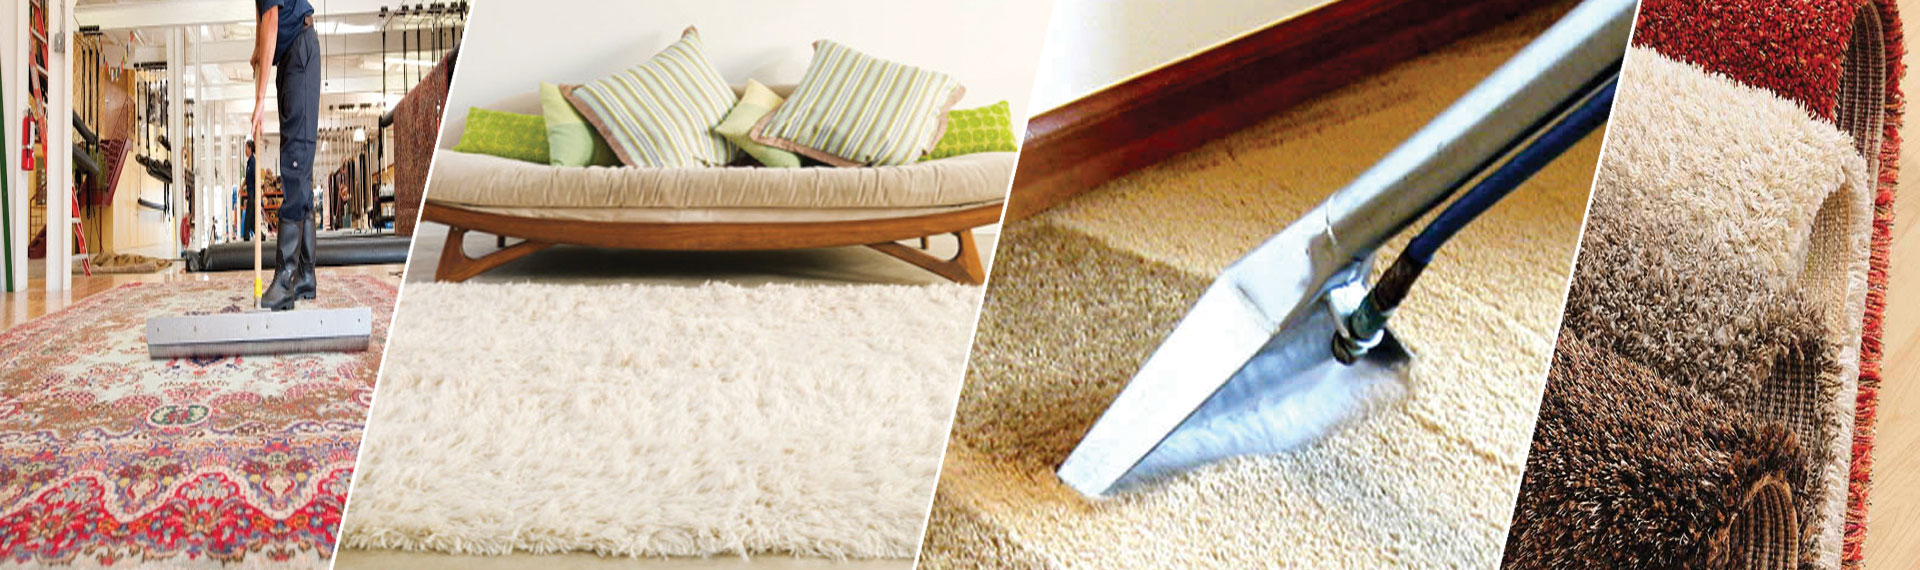 Robert Rug Cleaning Service Paoli PA